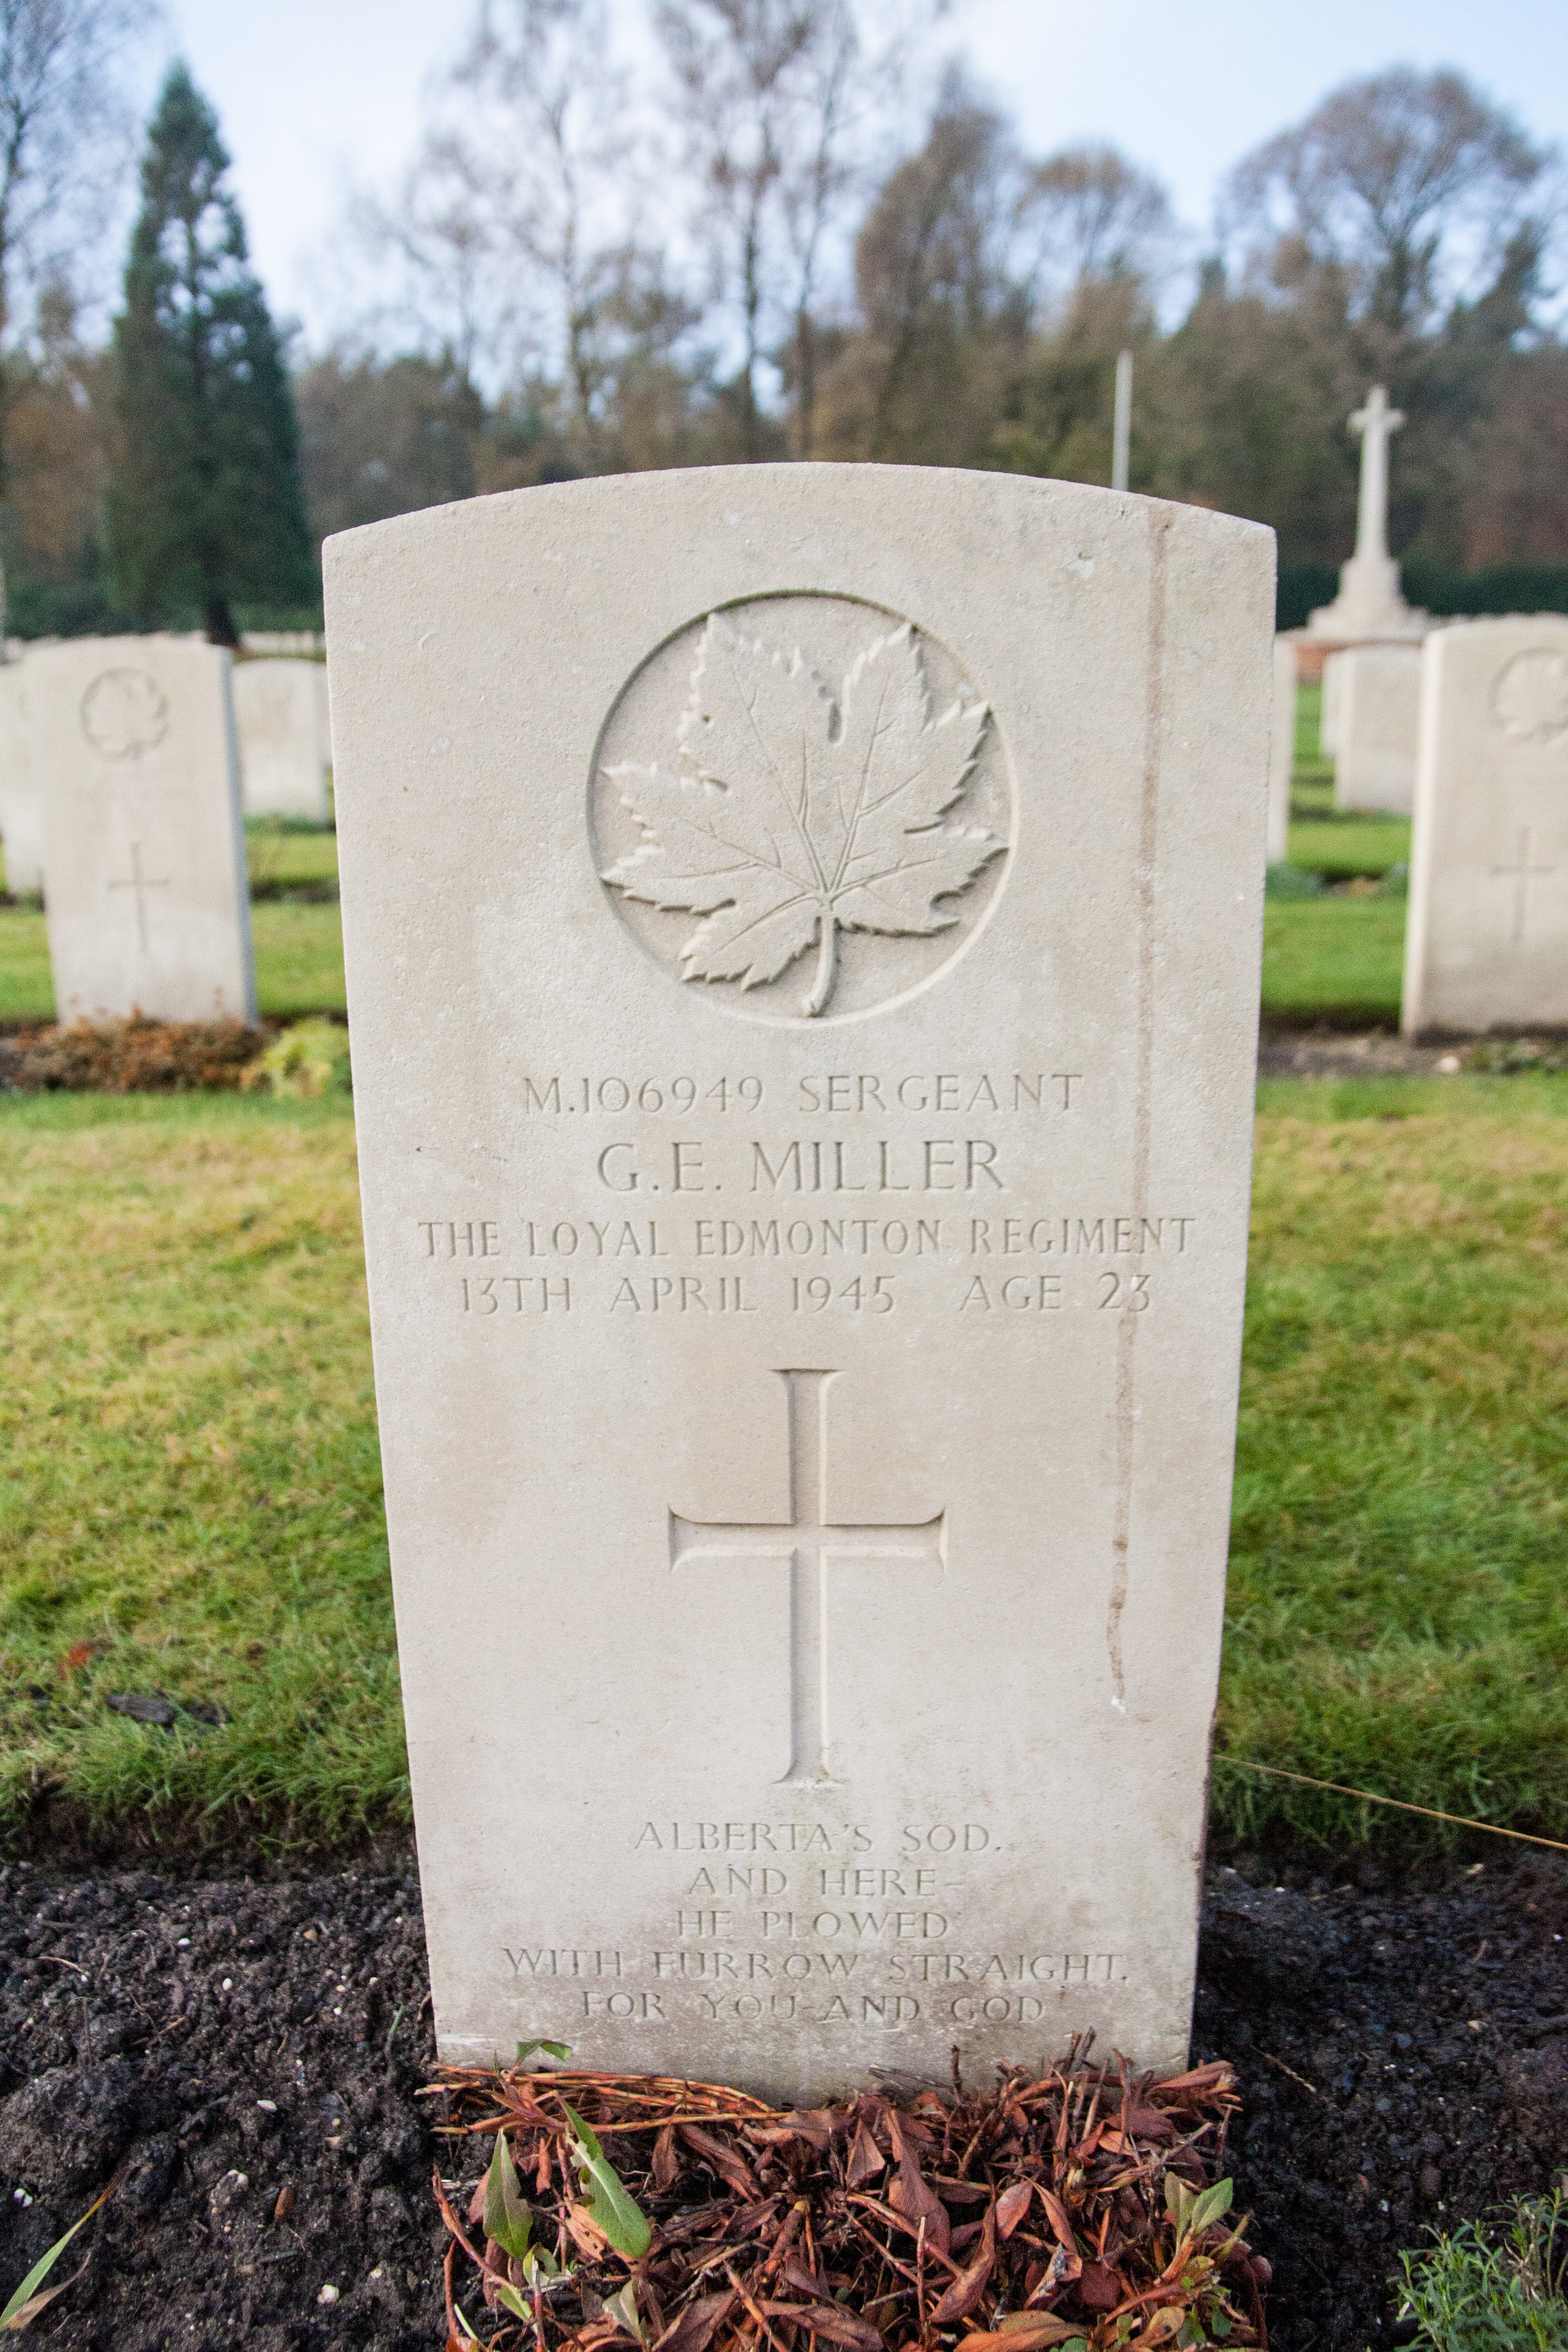 Being an Edmontontian and Albertan, I am always drawn to graves such as Sgt. Miller's, and seeing from my perspective how far from home and family they were when fighting for the freedom of the Dutch people.